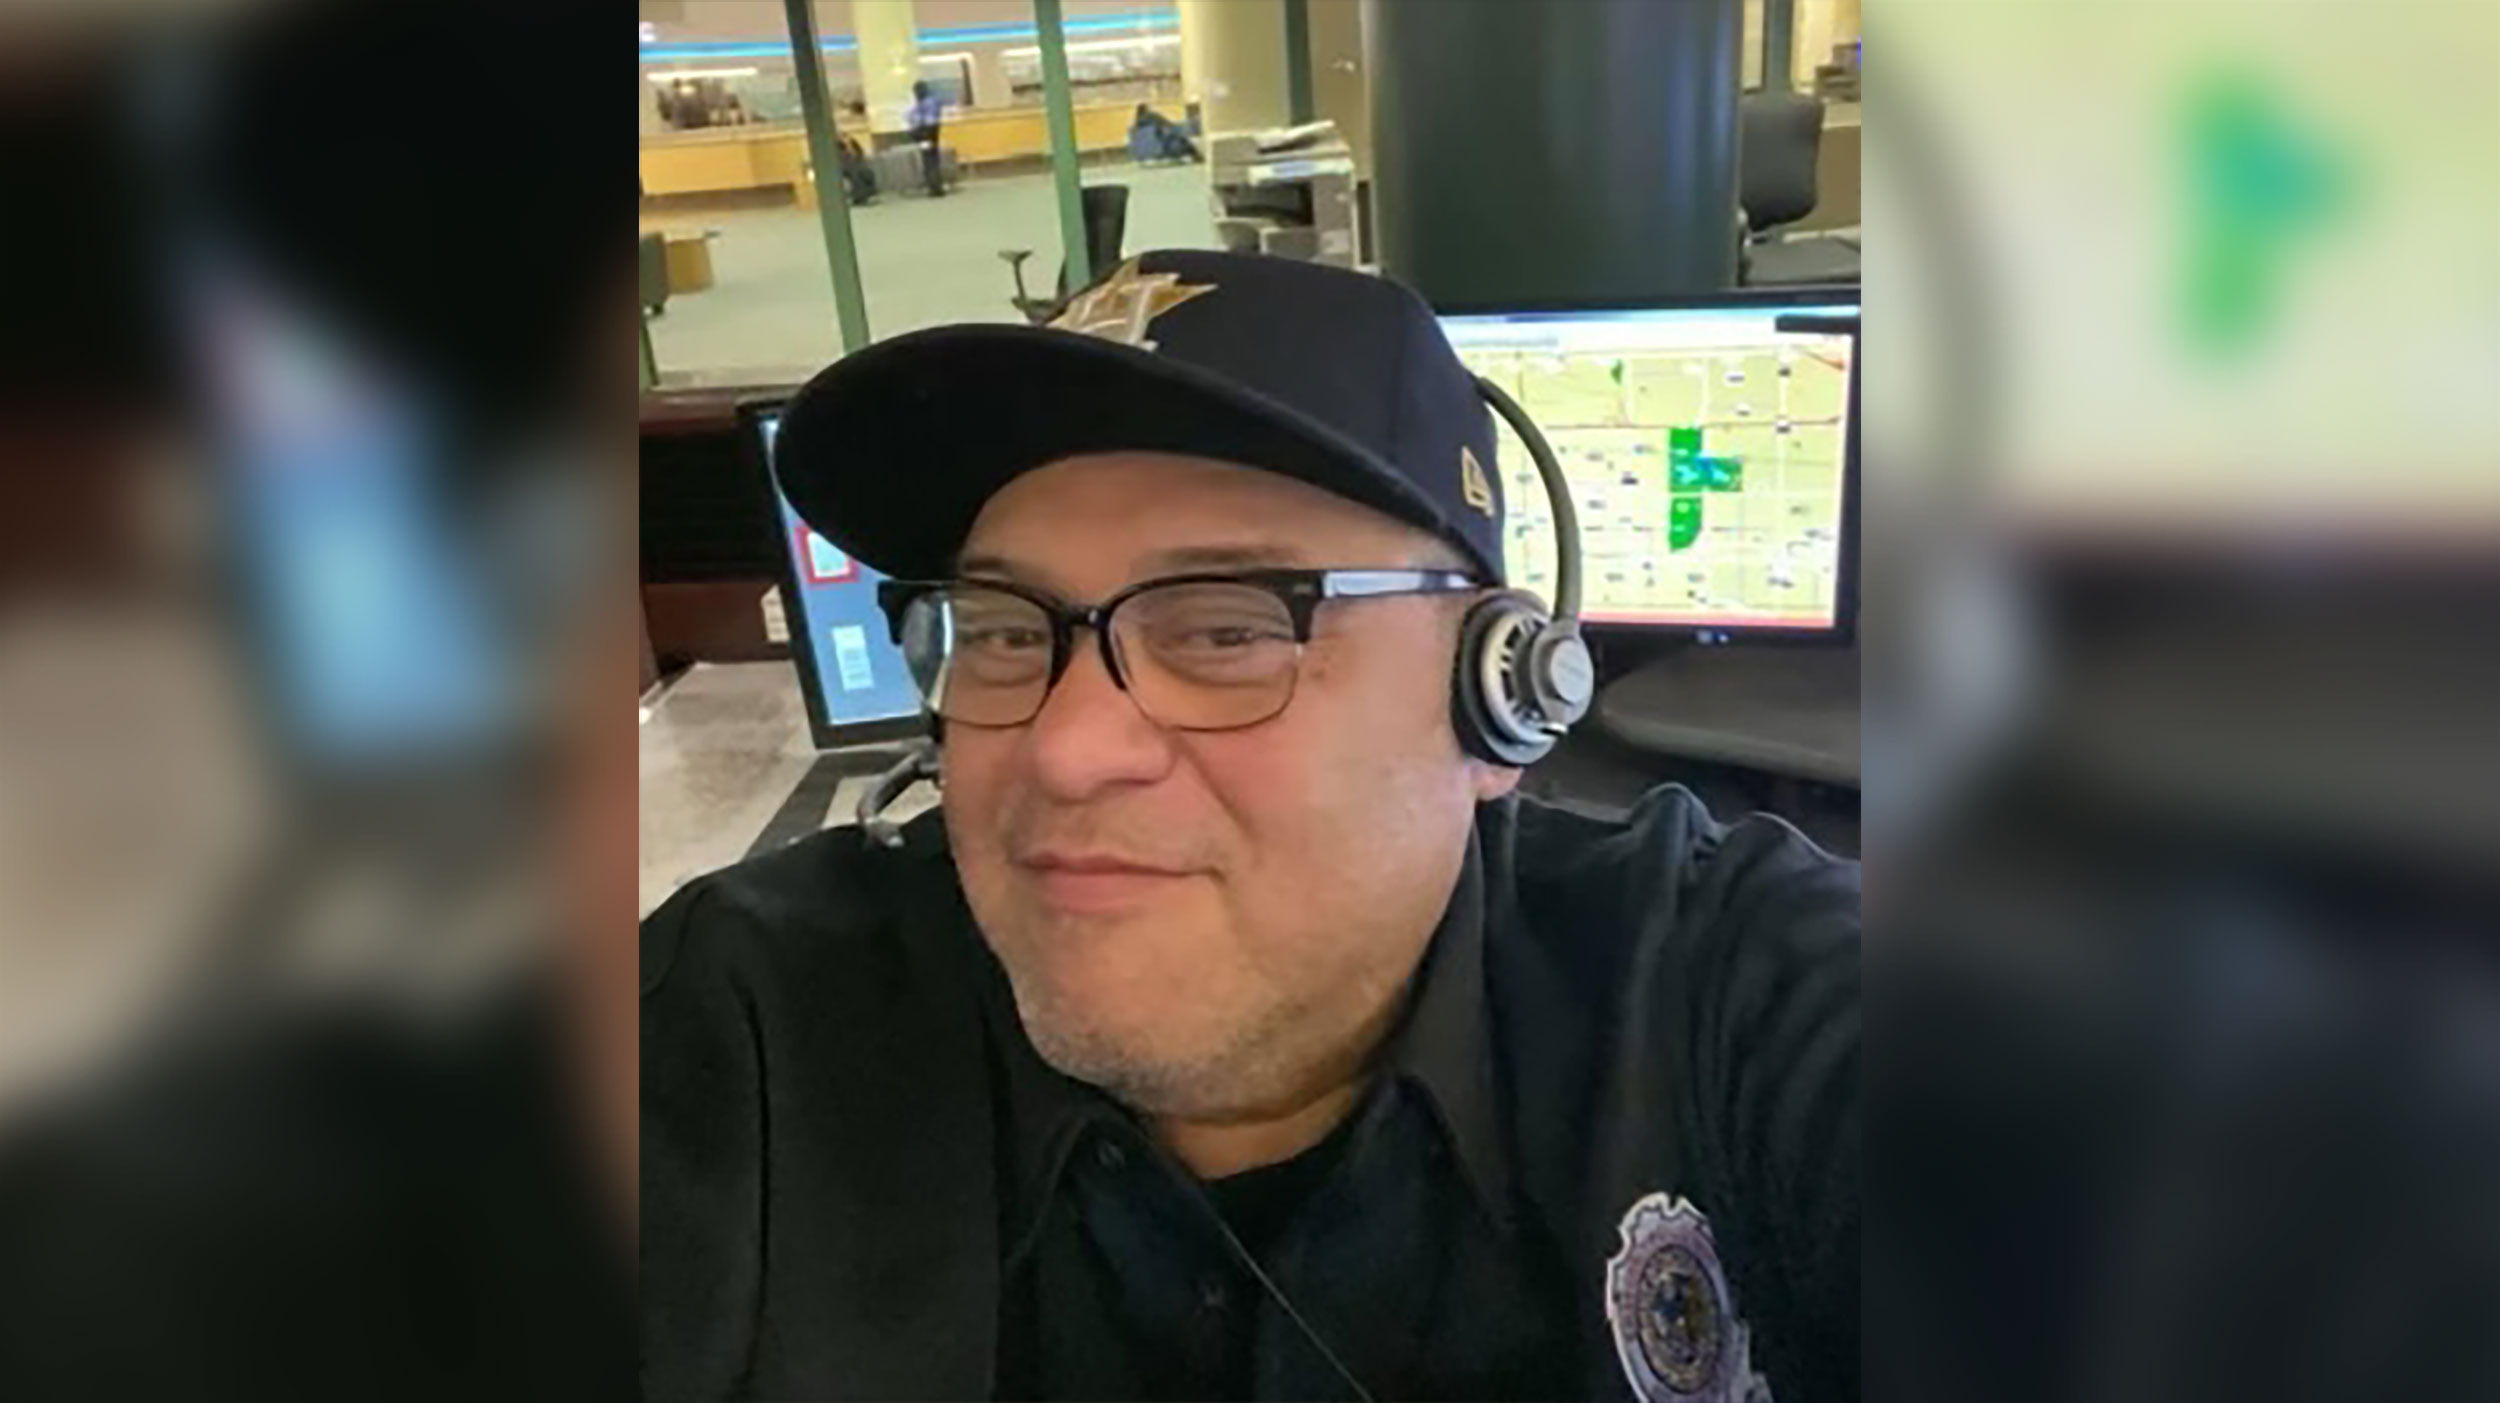 Covid-19 claims beloved Chicago dispatcher: 'His pride was going to work'